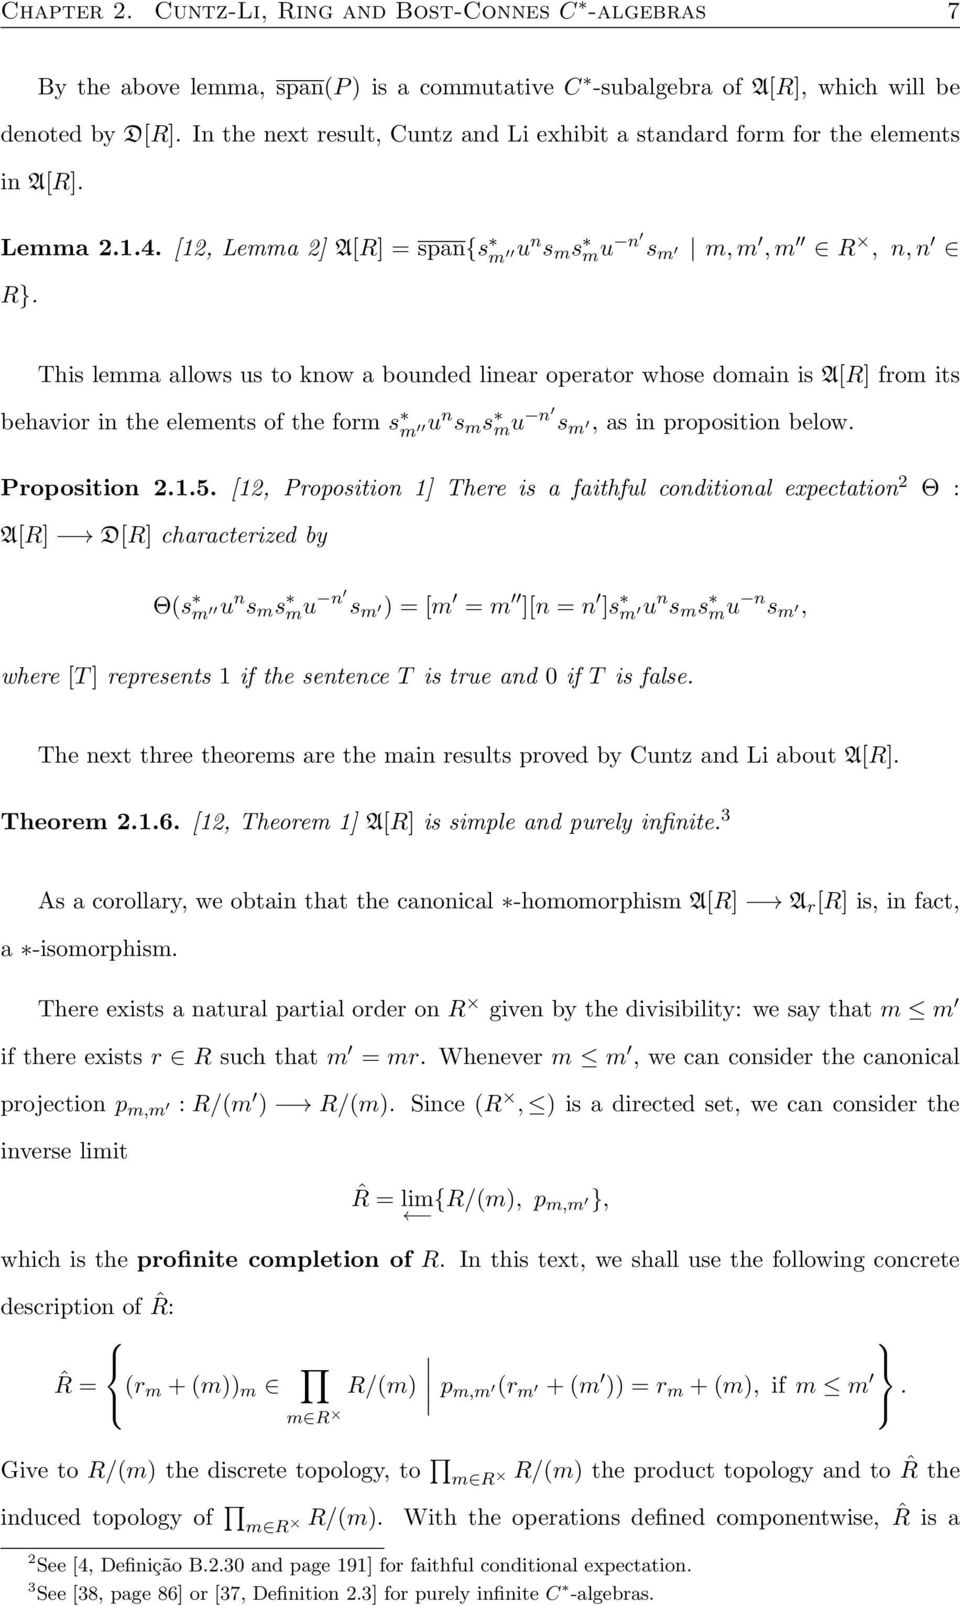 This lemma allows us to know a bounded linear operator whose domain is A[R] from its behavior in the elements of the form s m u n s m s mu n s m, as in proposition below. Proposition 2.1.5.